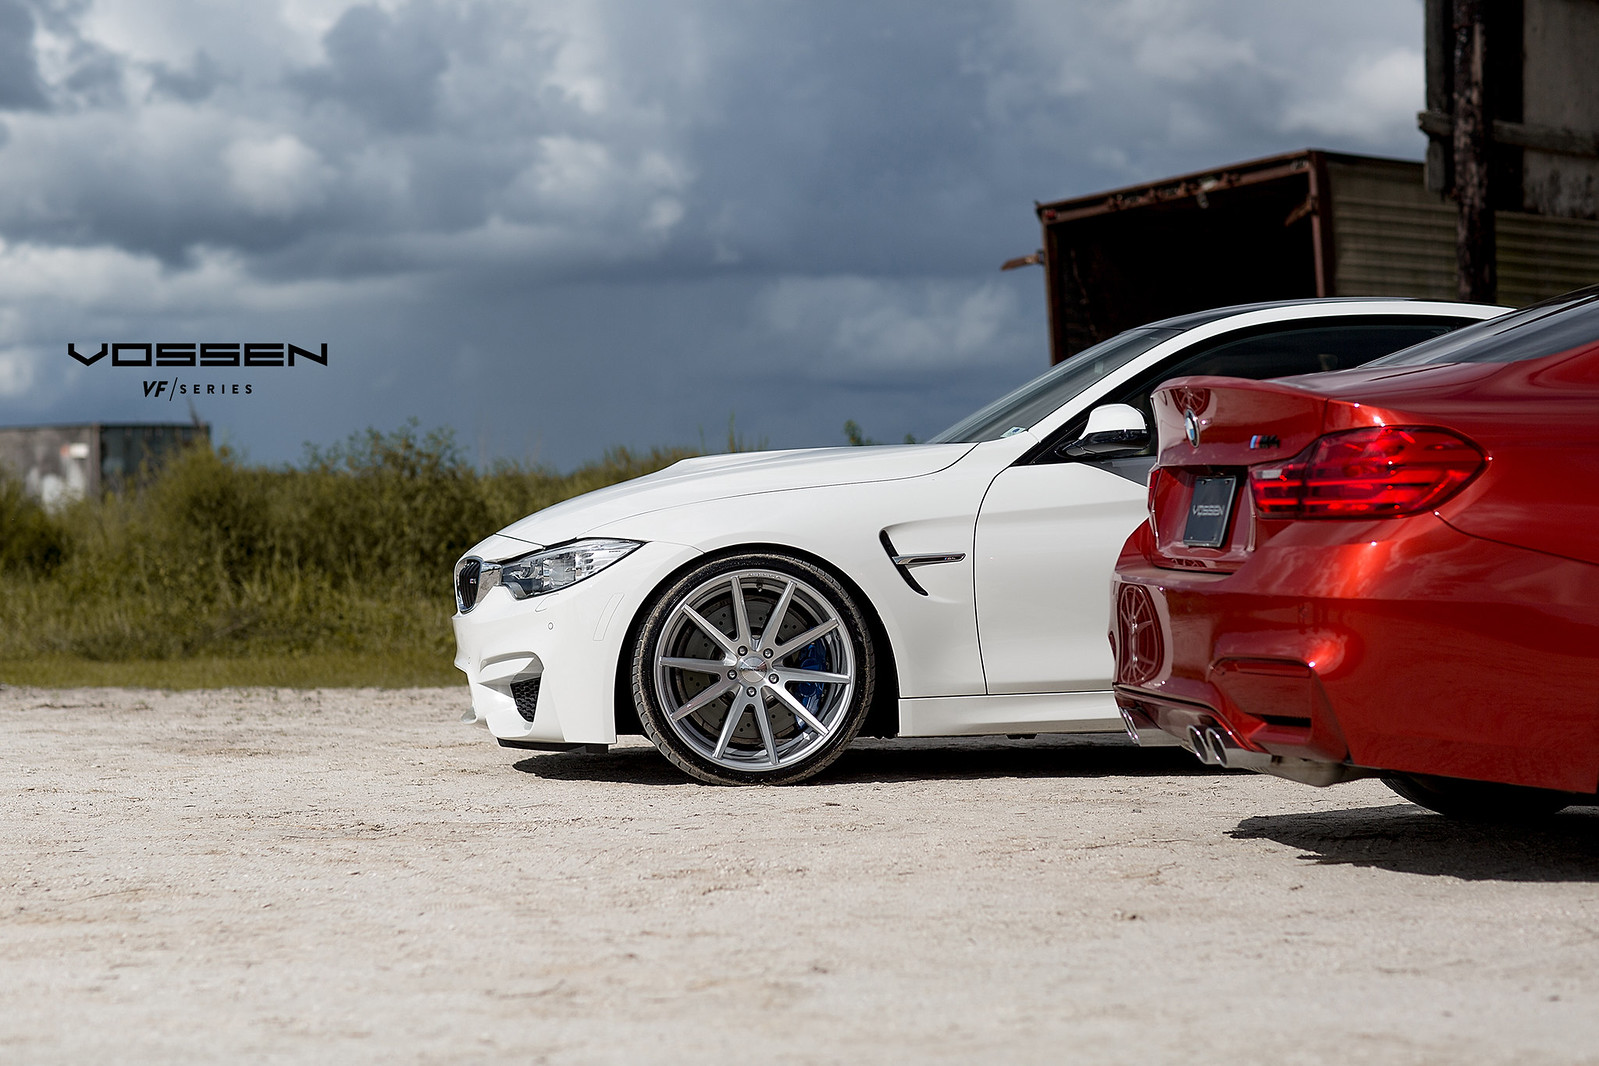 BMW M4 on Vossen wheels